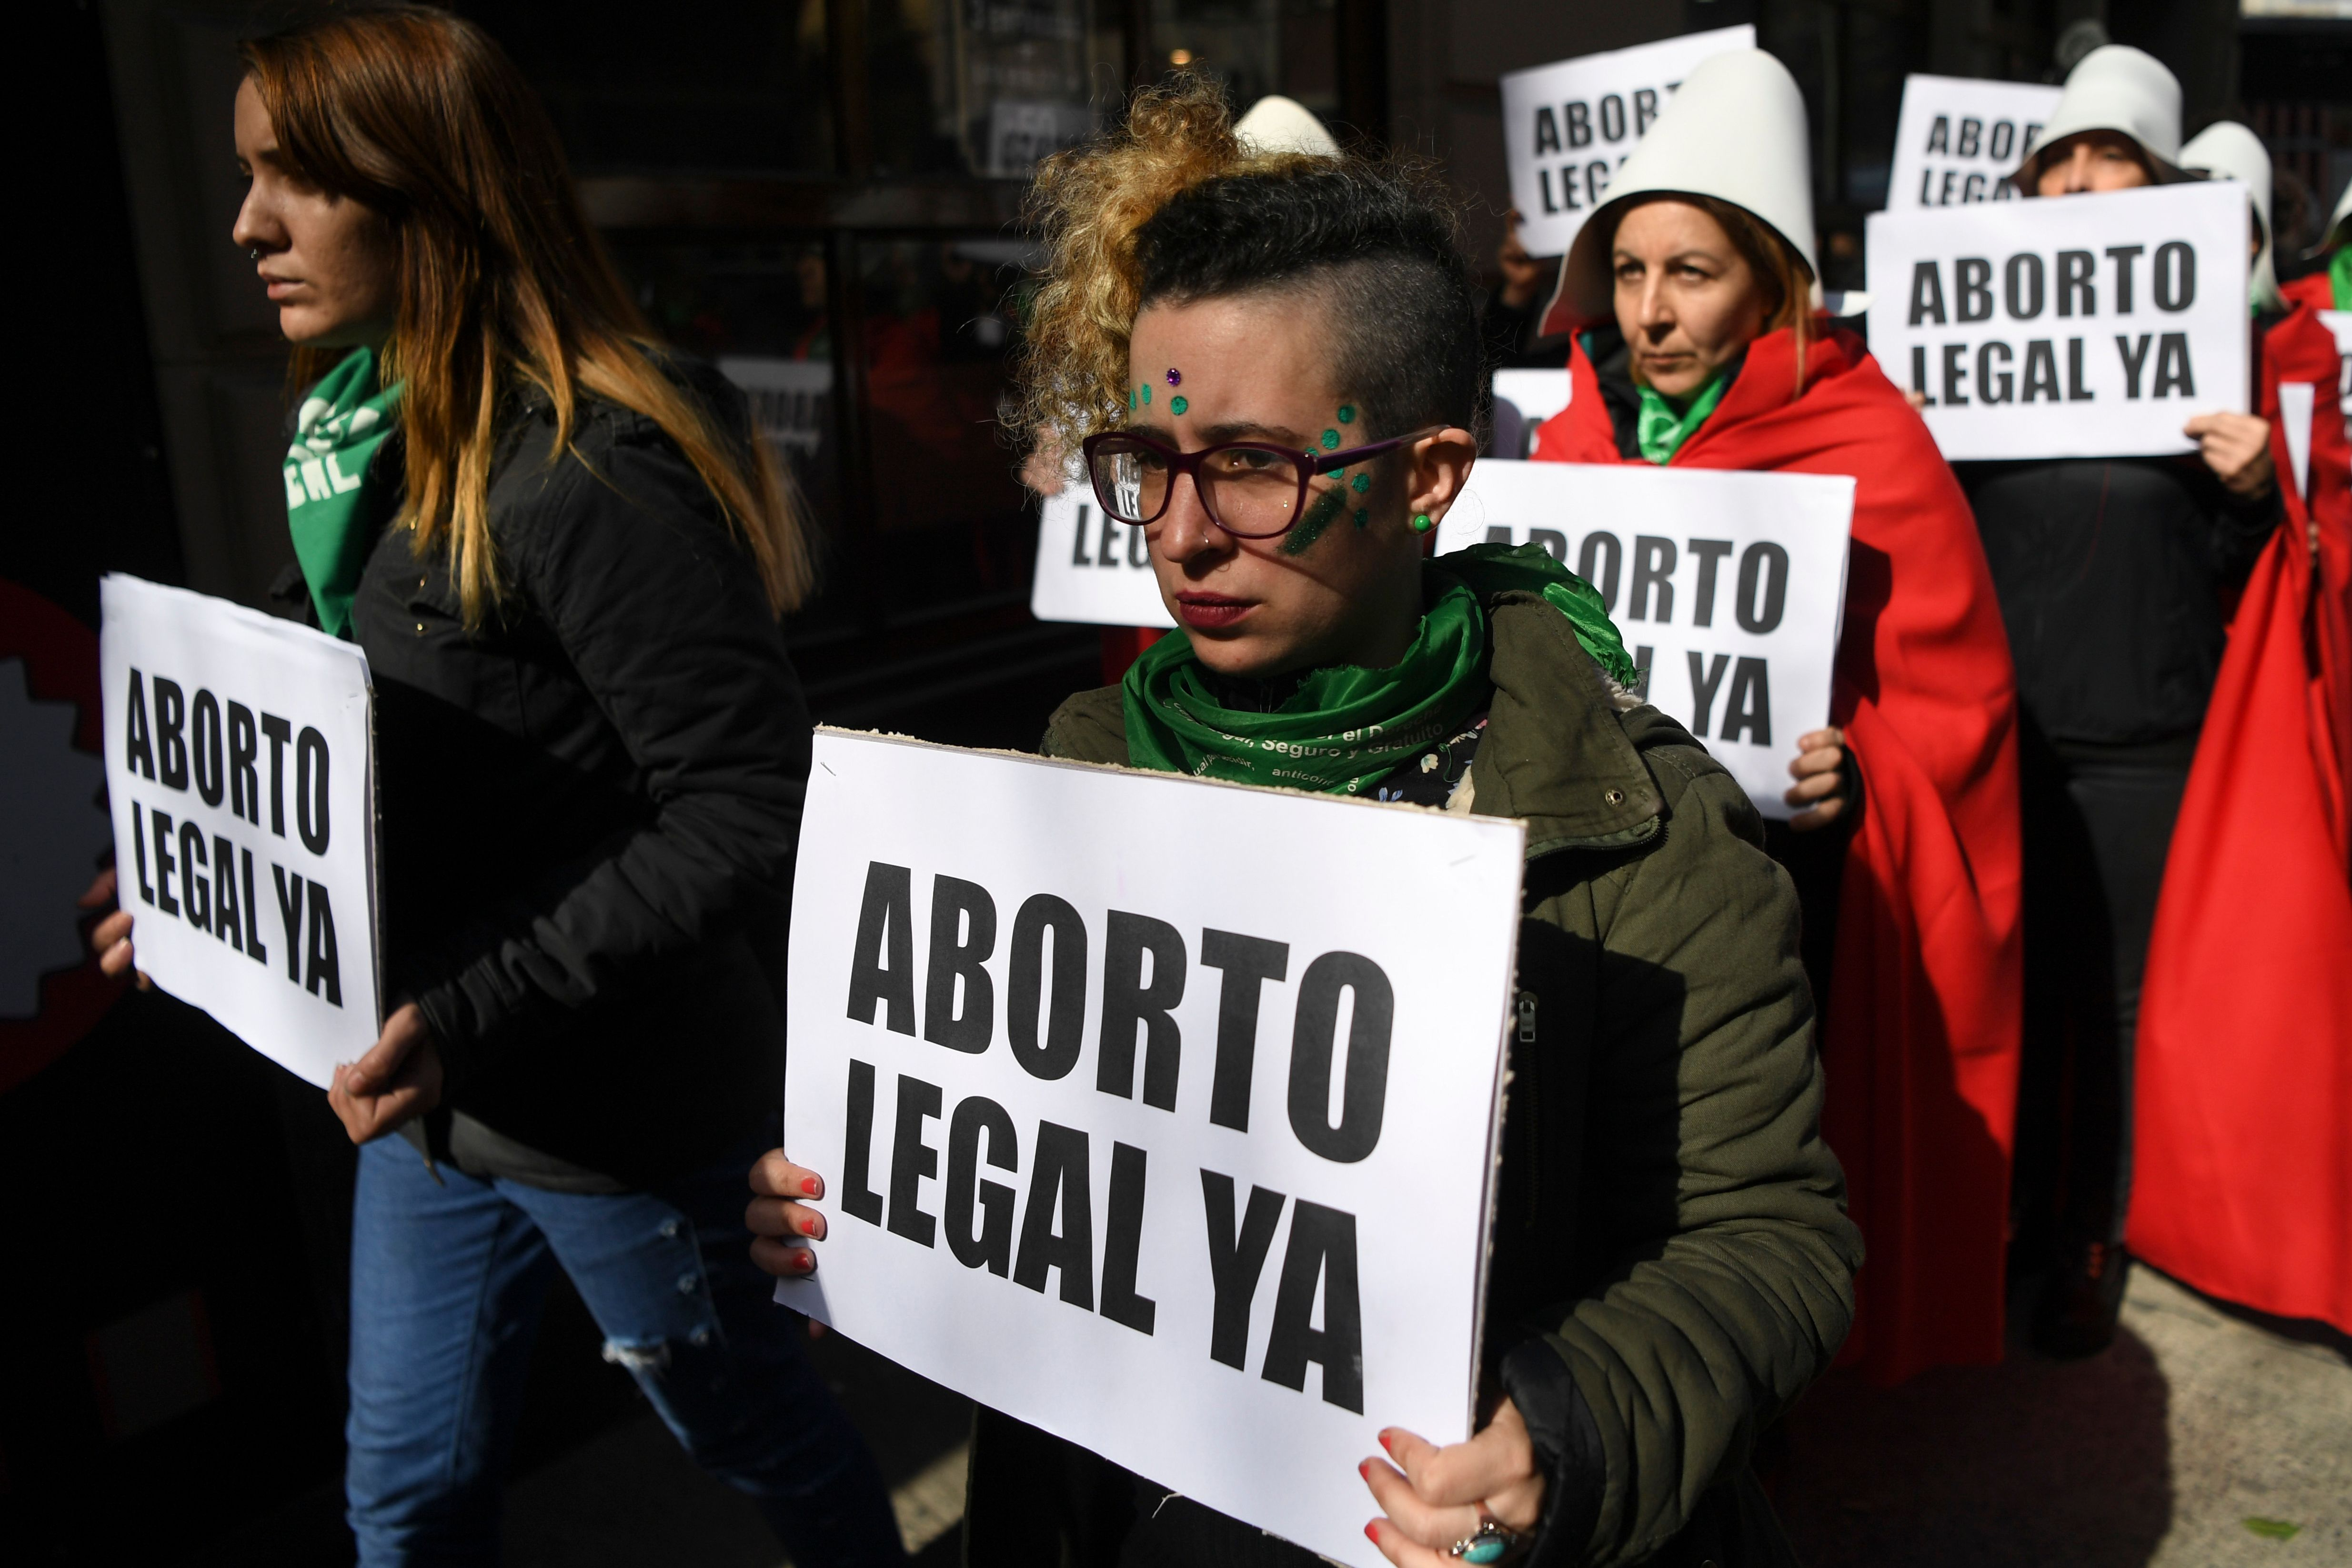 People in favor legalizing abortion demonstrate outside the National Congress in Buenos Aires, Argentina on Aug. 1, 2018.